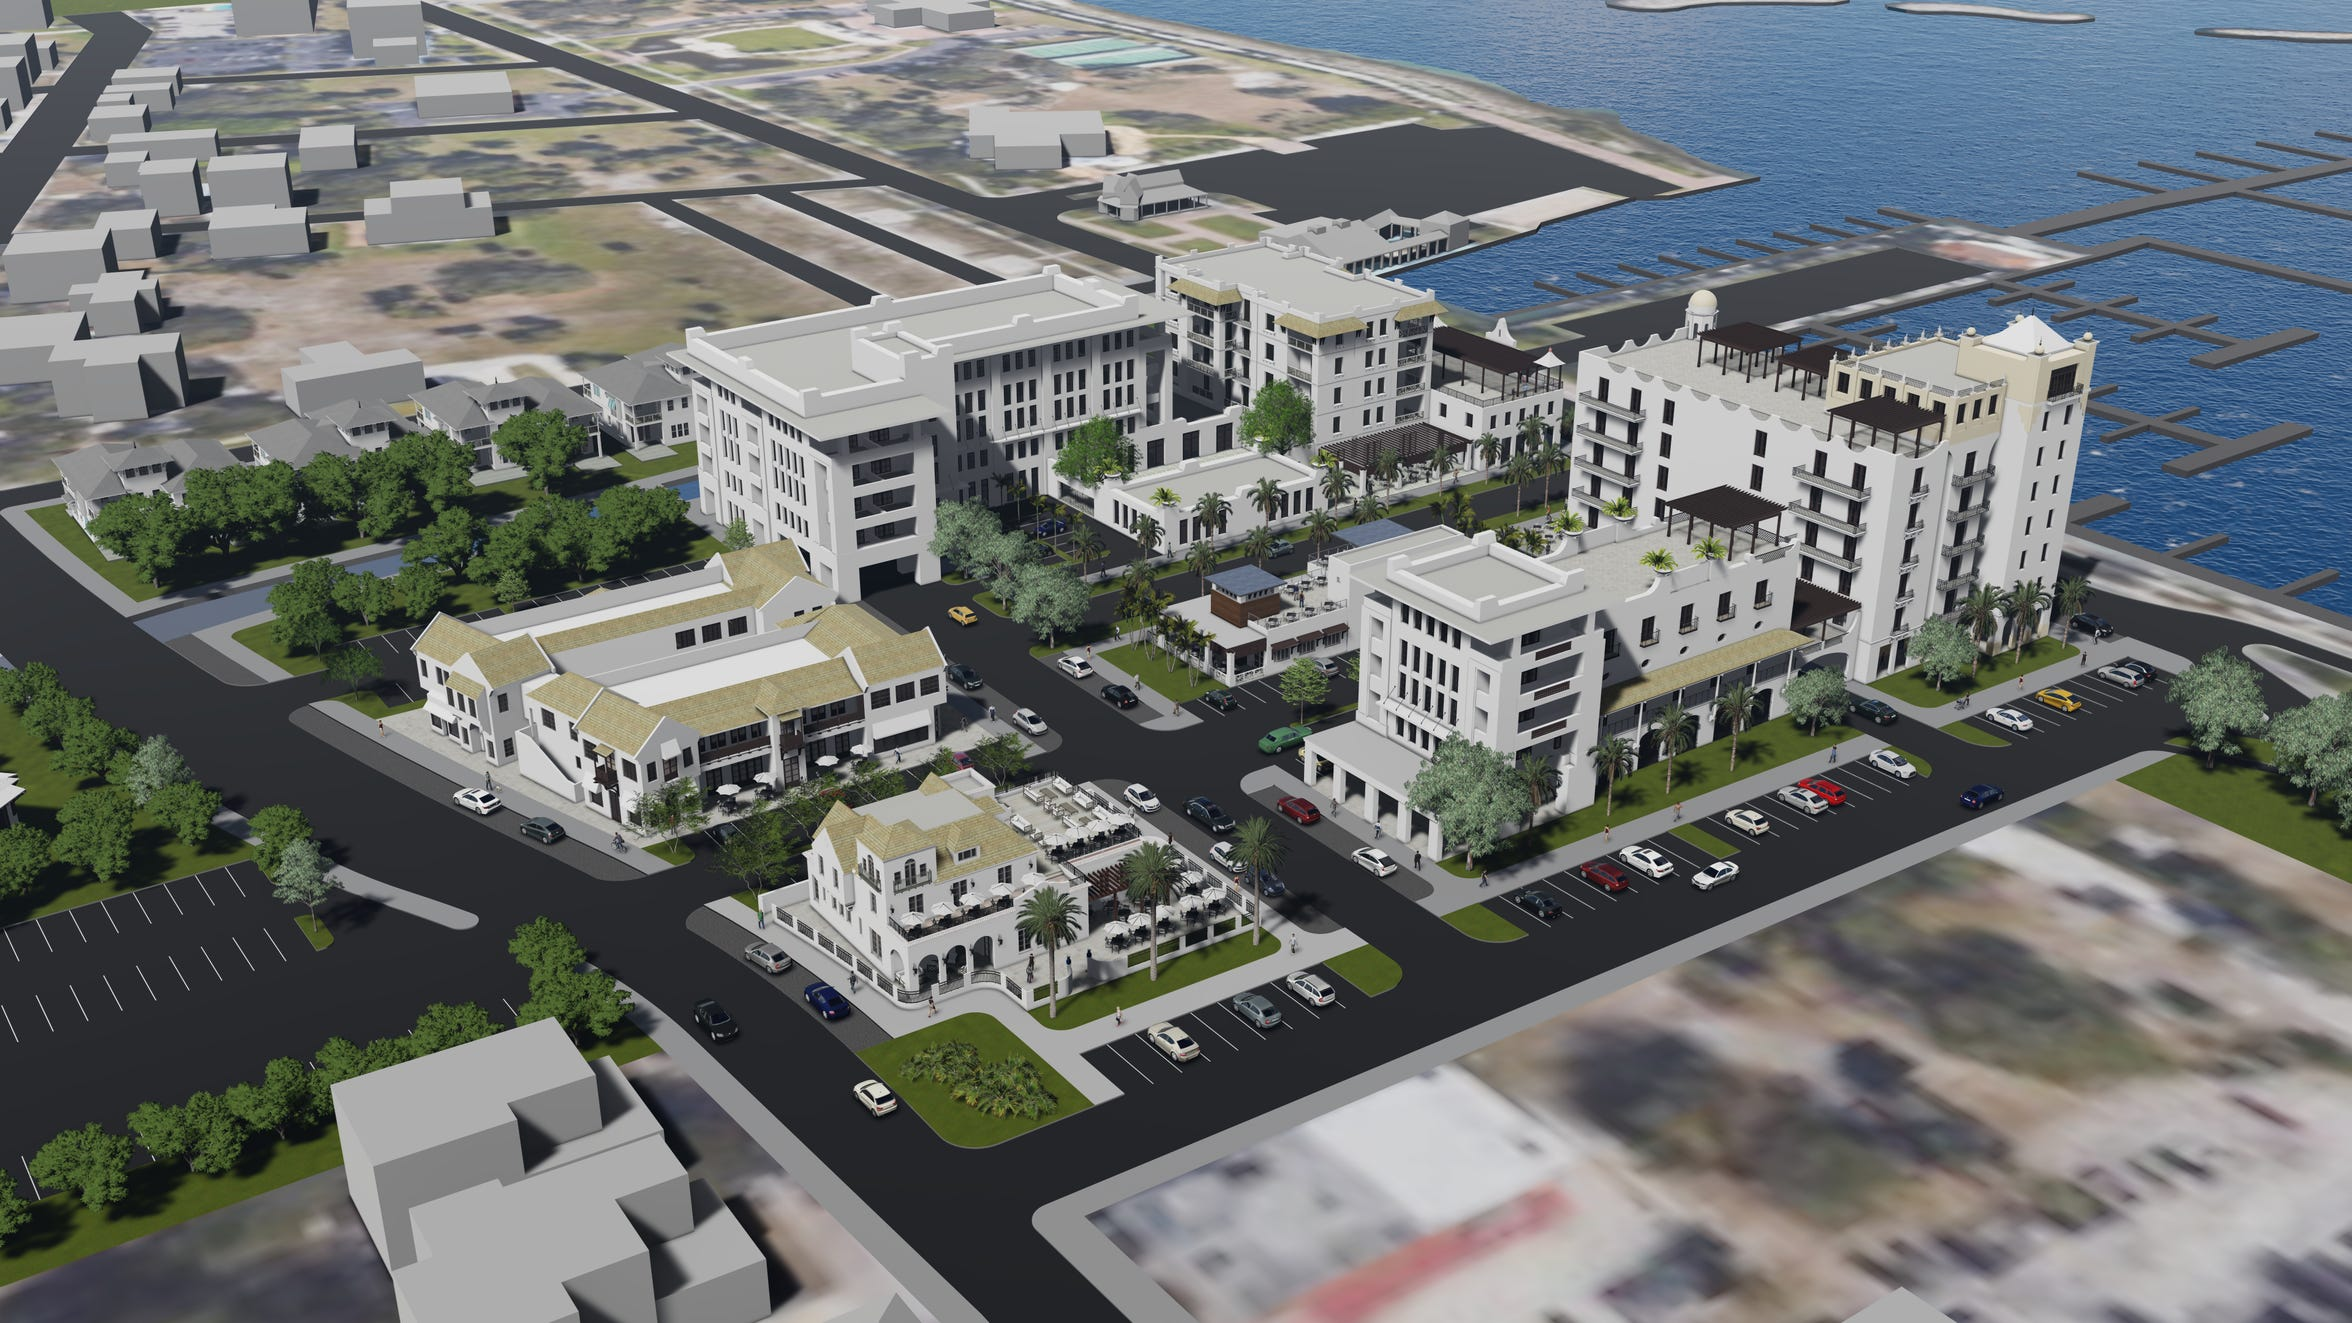 Audubon Development, of West Palm, won Fort Pierce's blessing to build King's Landing, an $85 million residential-retail-hotel development in downtown. The project will include a 120-room Marriott-brand hotel, condos, 40,00 square feet of shopping, space for two restaurants and parking for 300 cars.